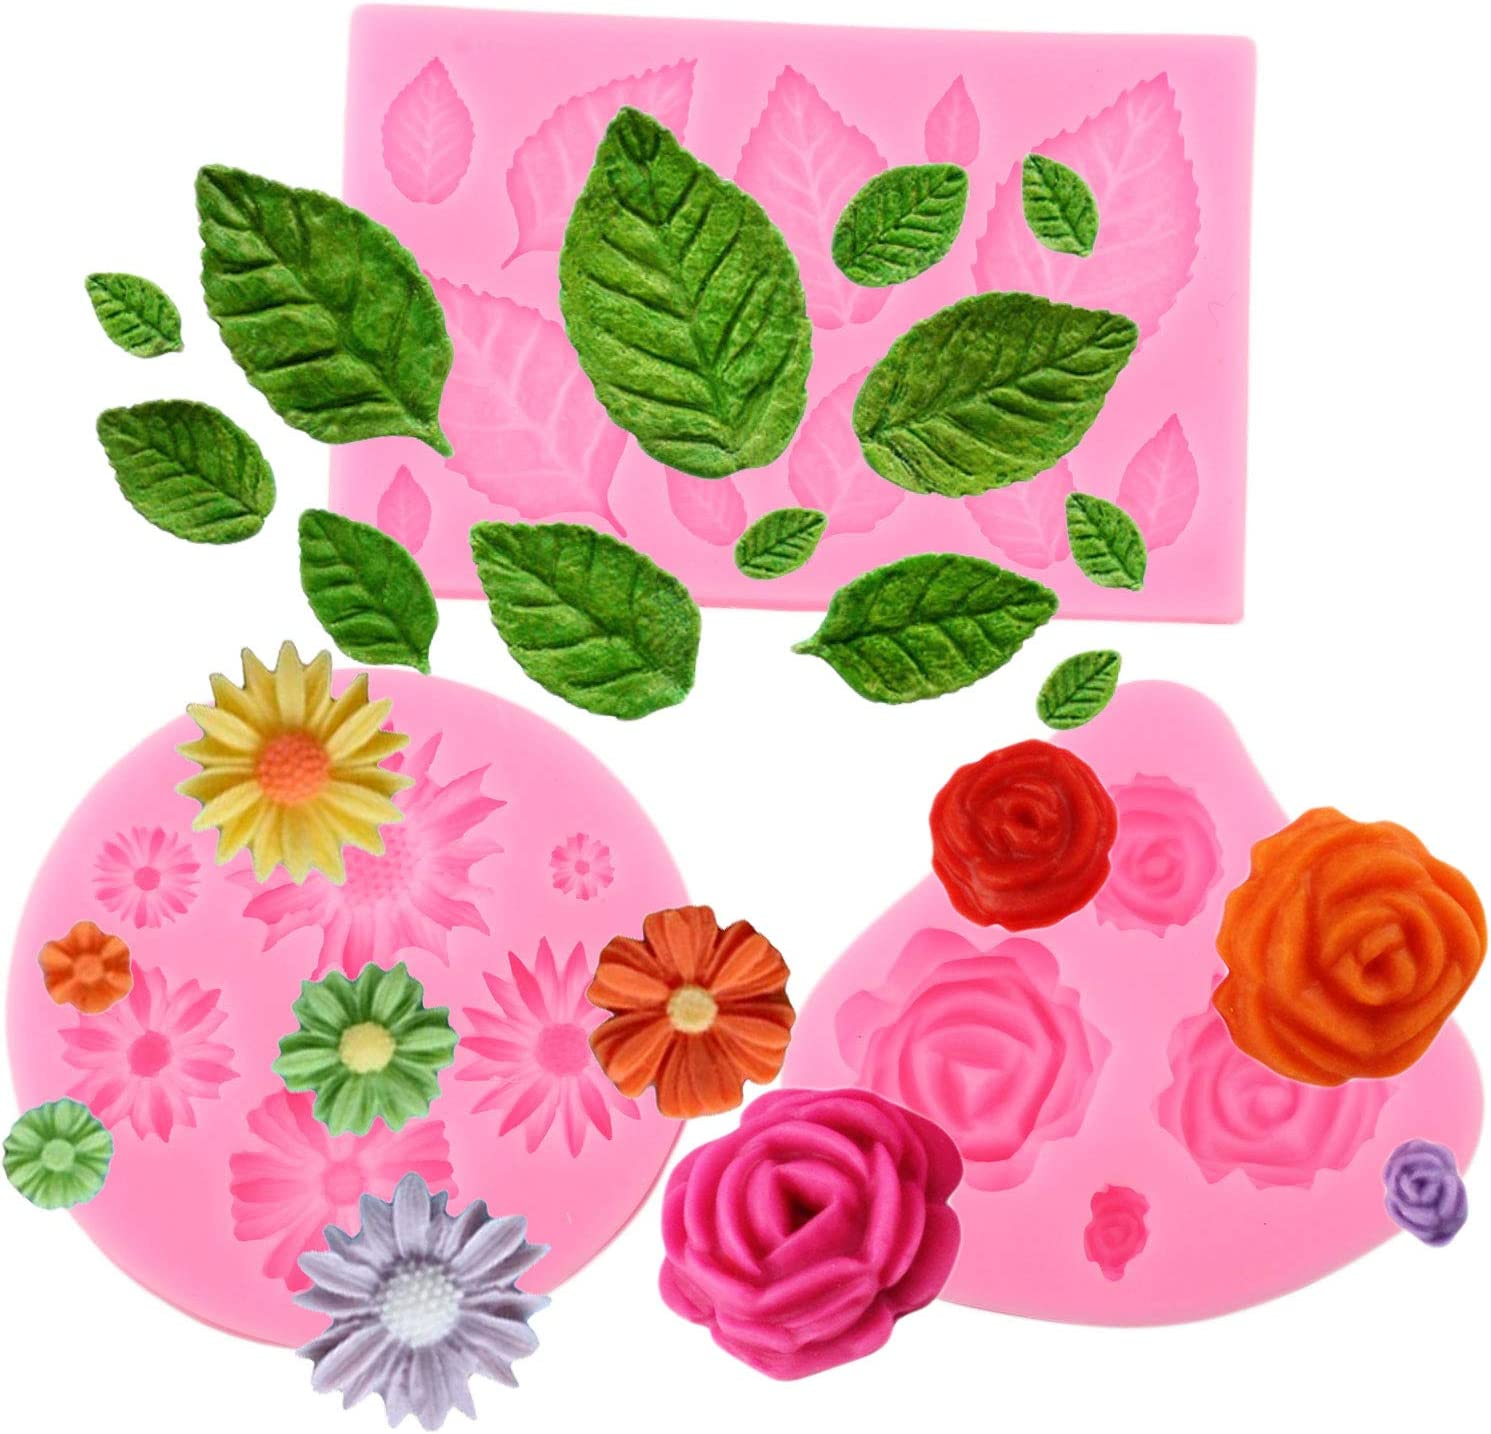 Mujiang Mini Leaves Silicone Mold 3 Pack Fondant Cake Mold Daisy Rose Sunflower Candy Baking Tools